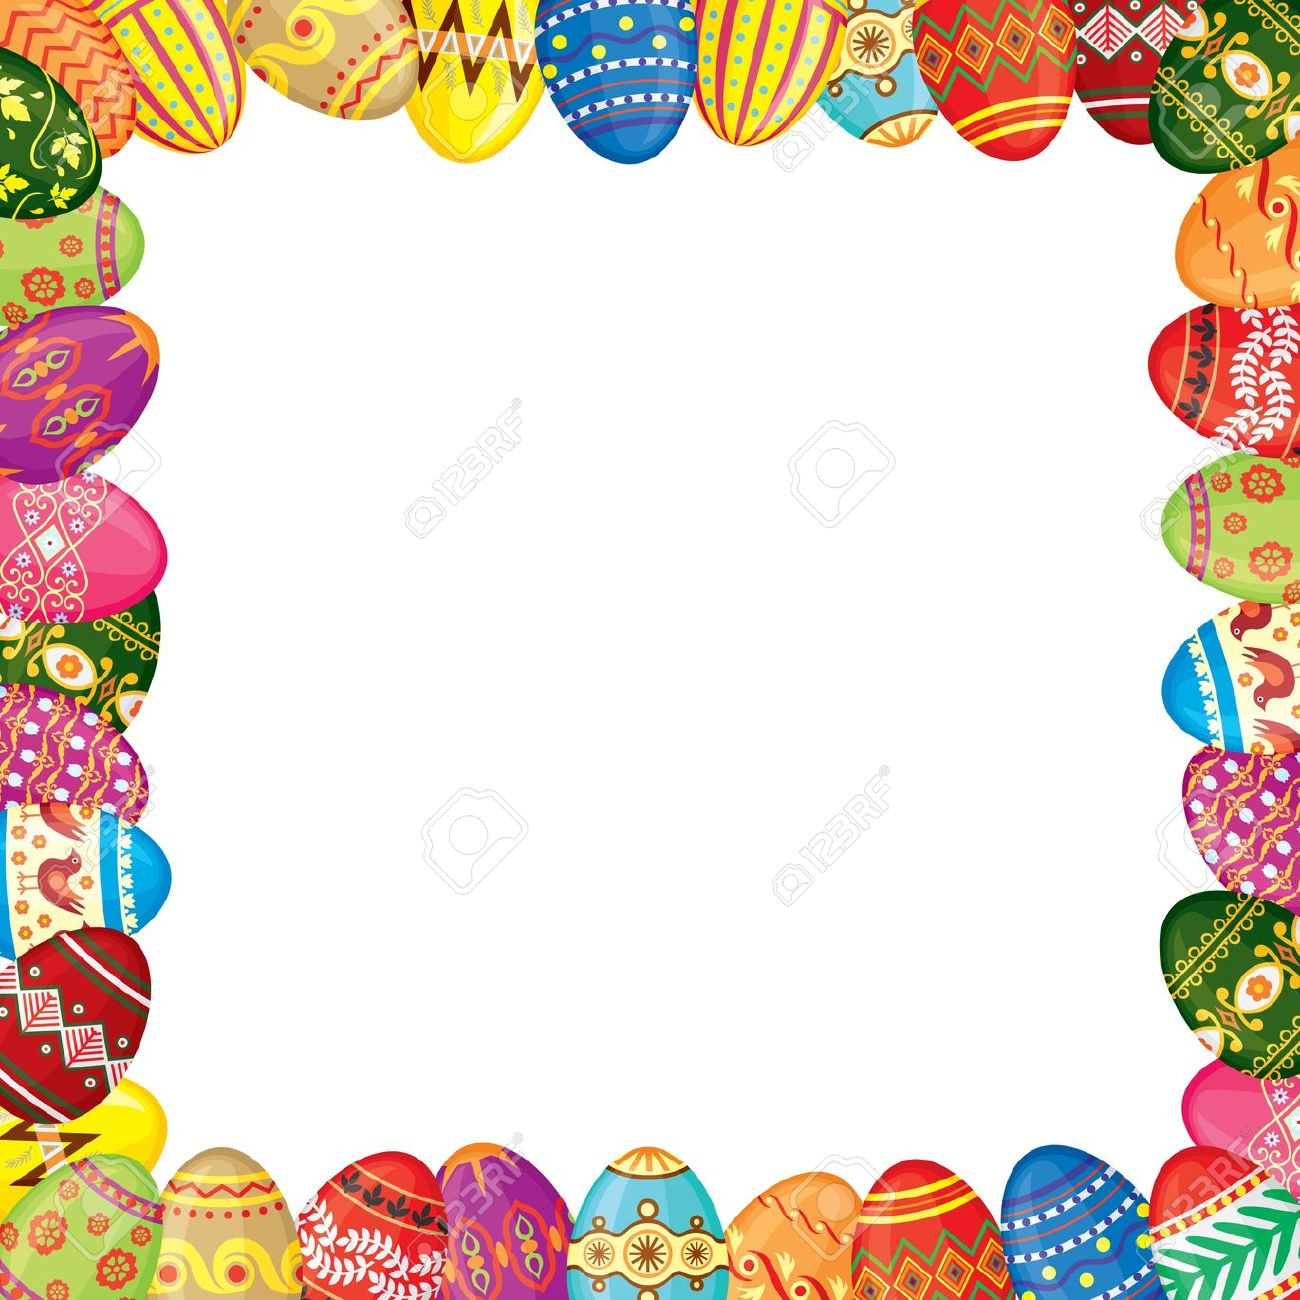 Free Easter Egg Borders and Frames